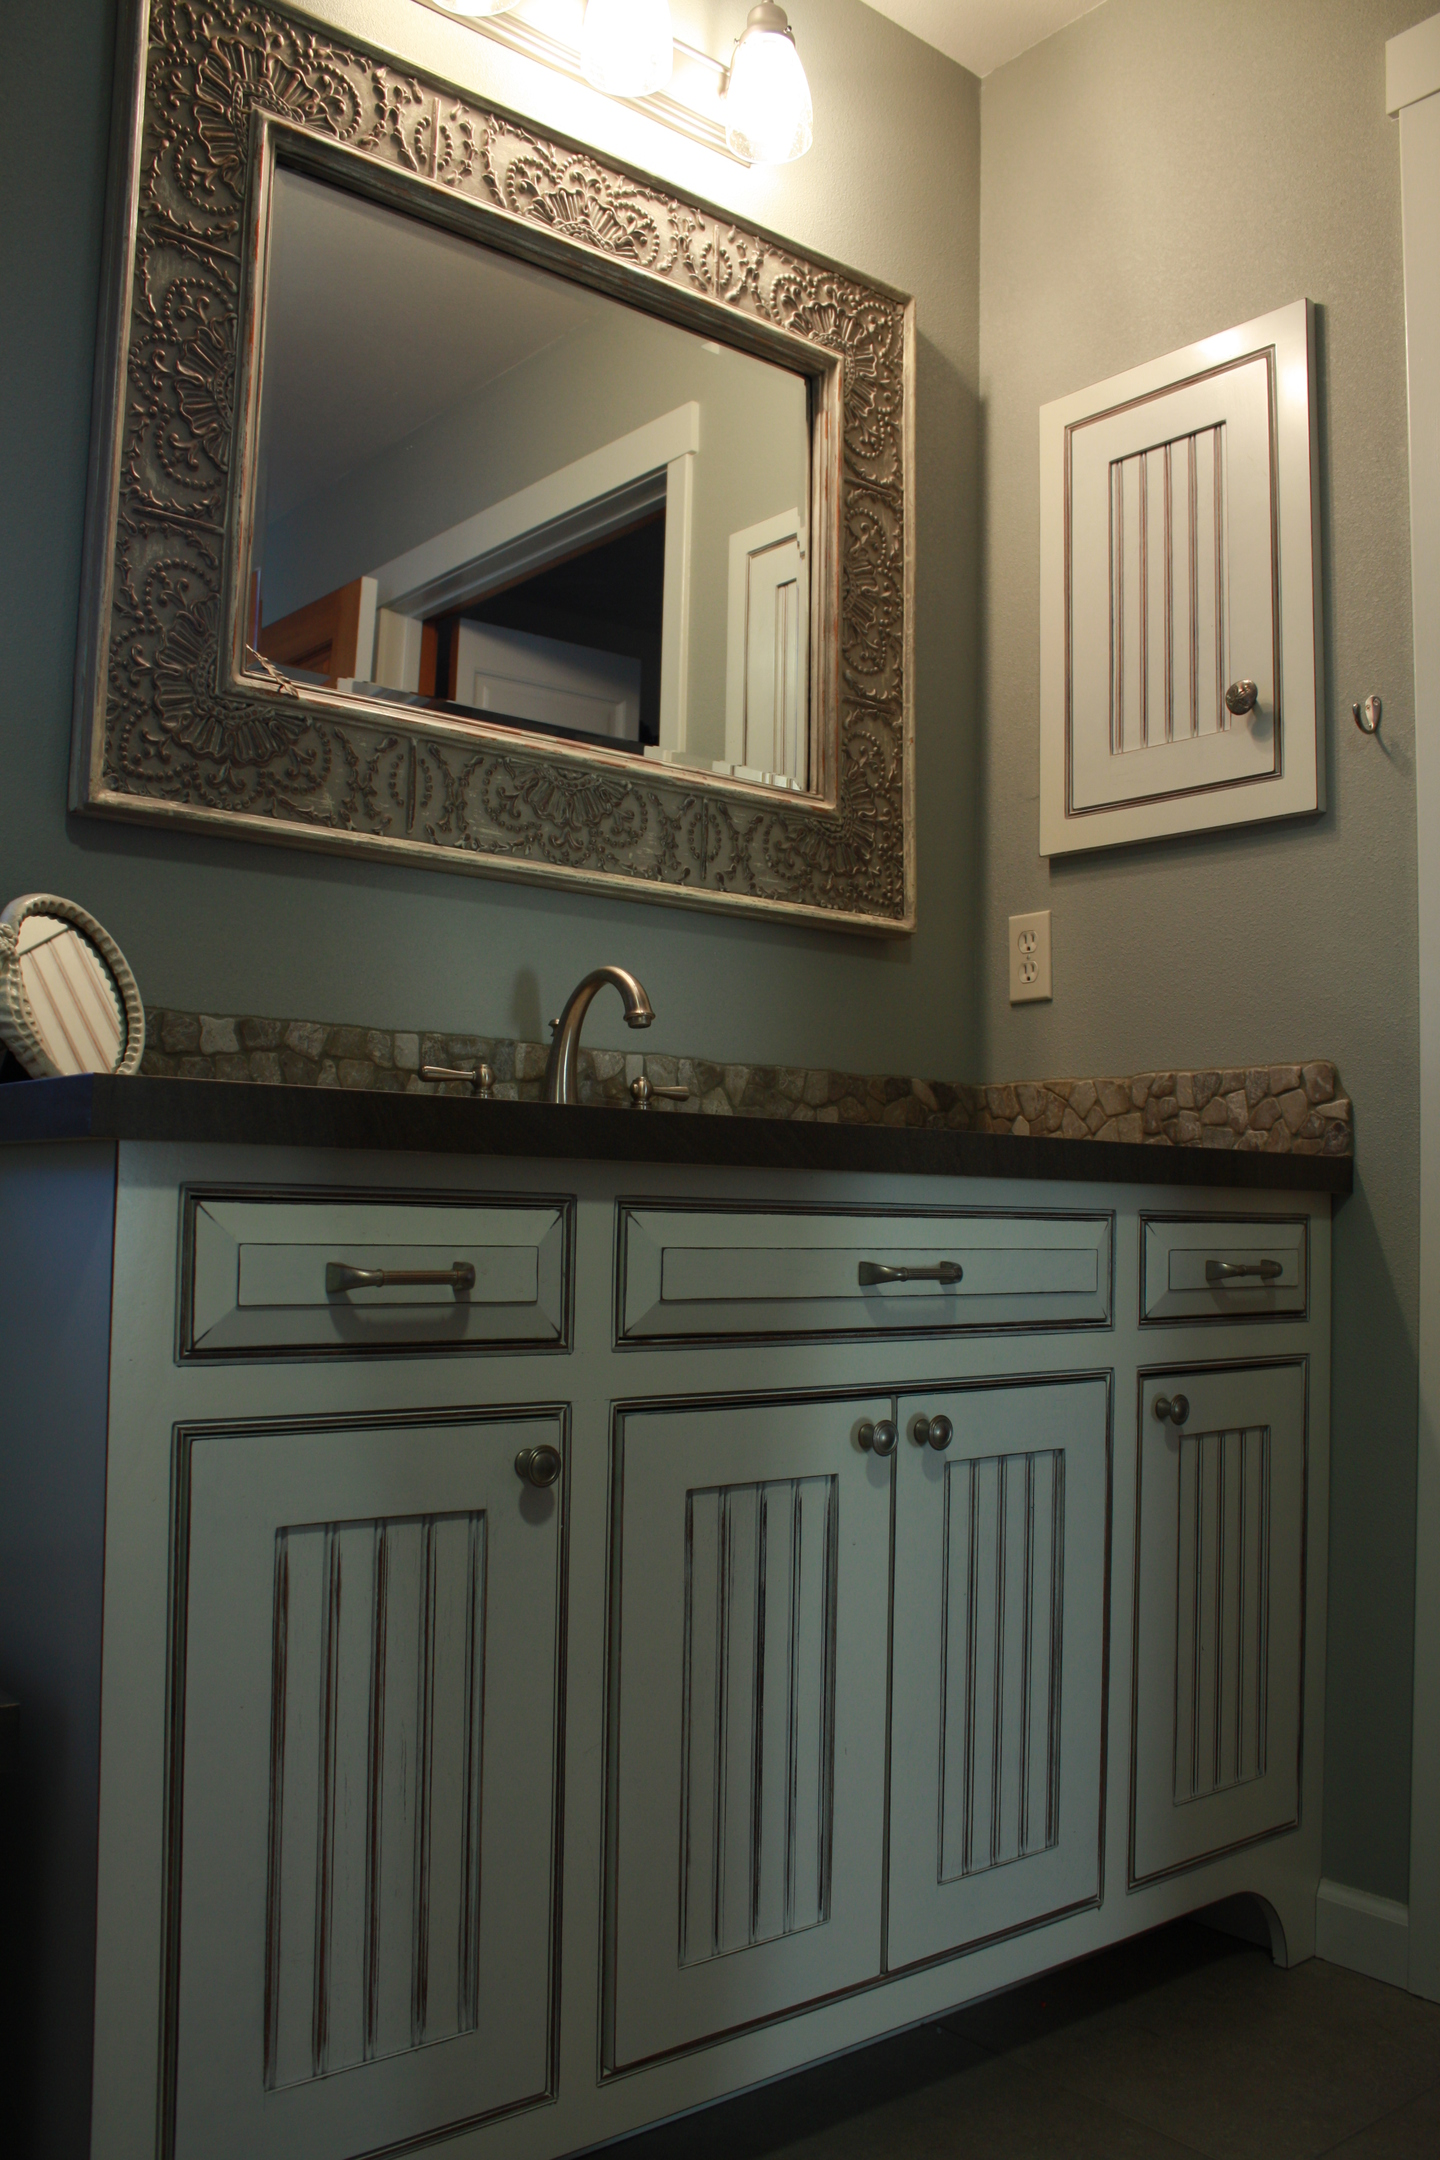 Thumb Vanity Traditional Style Painted With Glaze Wainscot Panel Flush  Mount Medicine Cabinet Arched Toekick Bevel